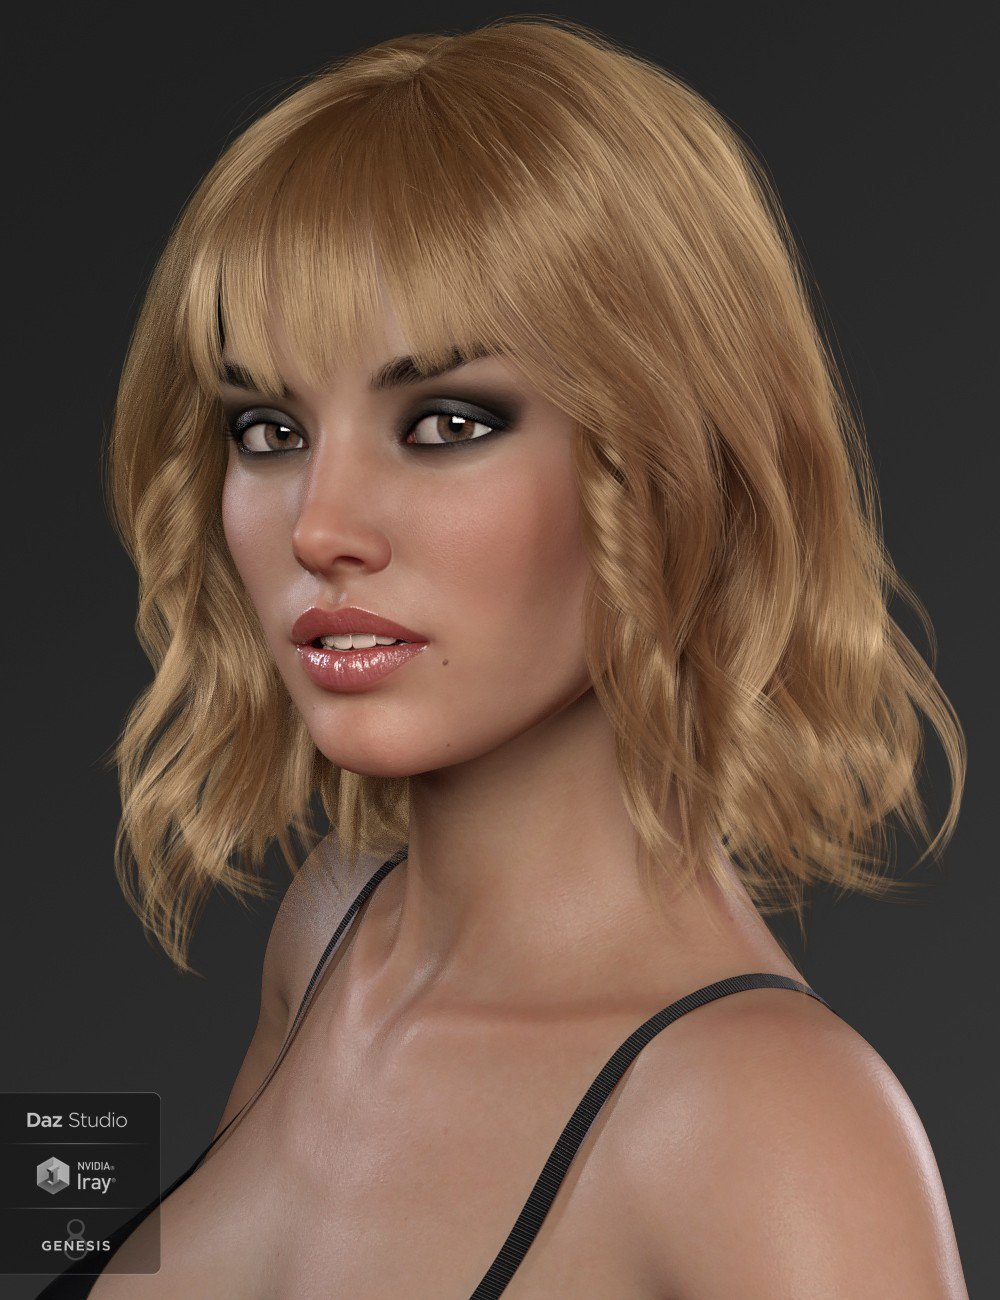 Download DAZ Studio 3 for FREE!: DAZ 3D - Taylor Hair For